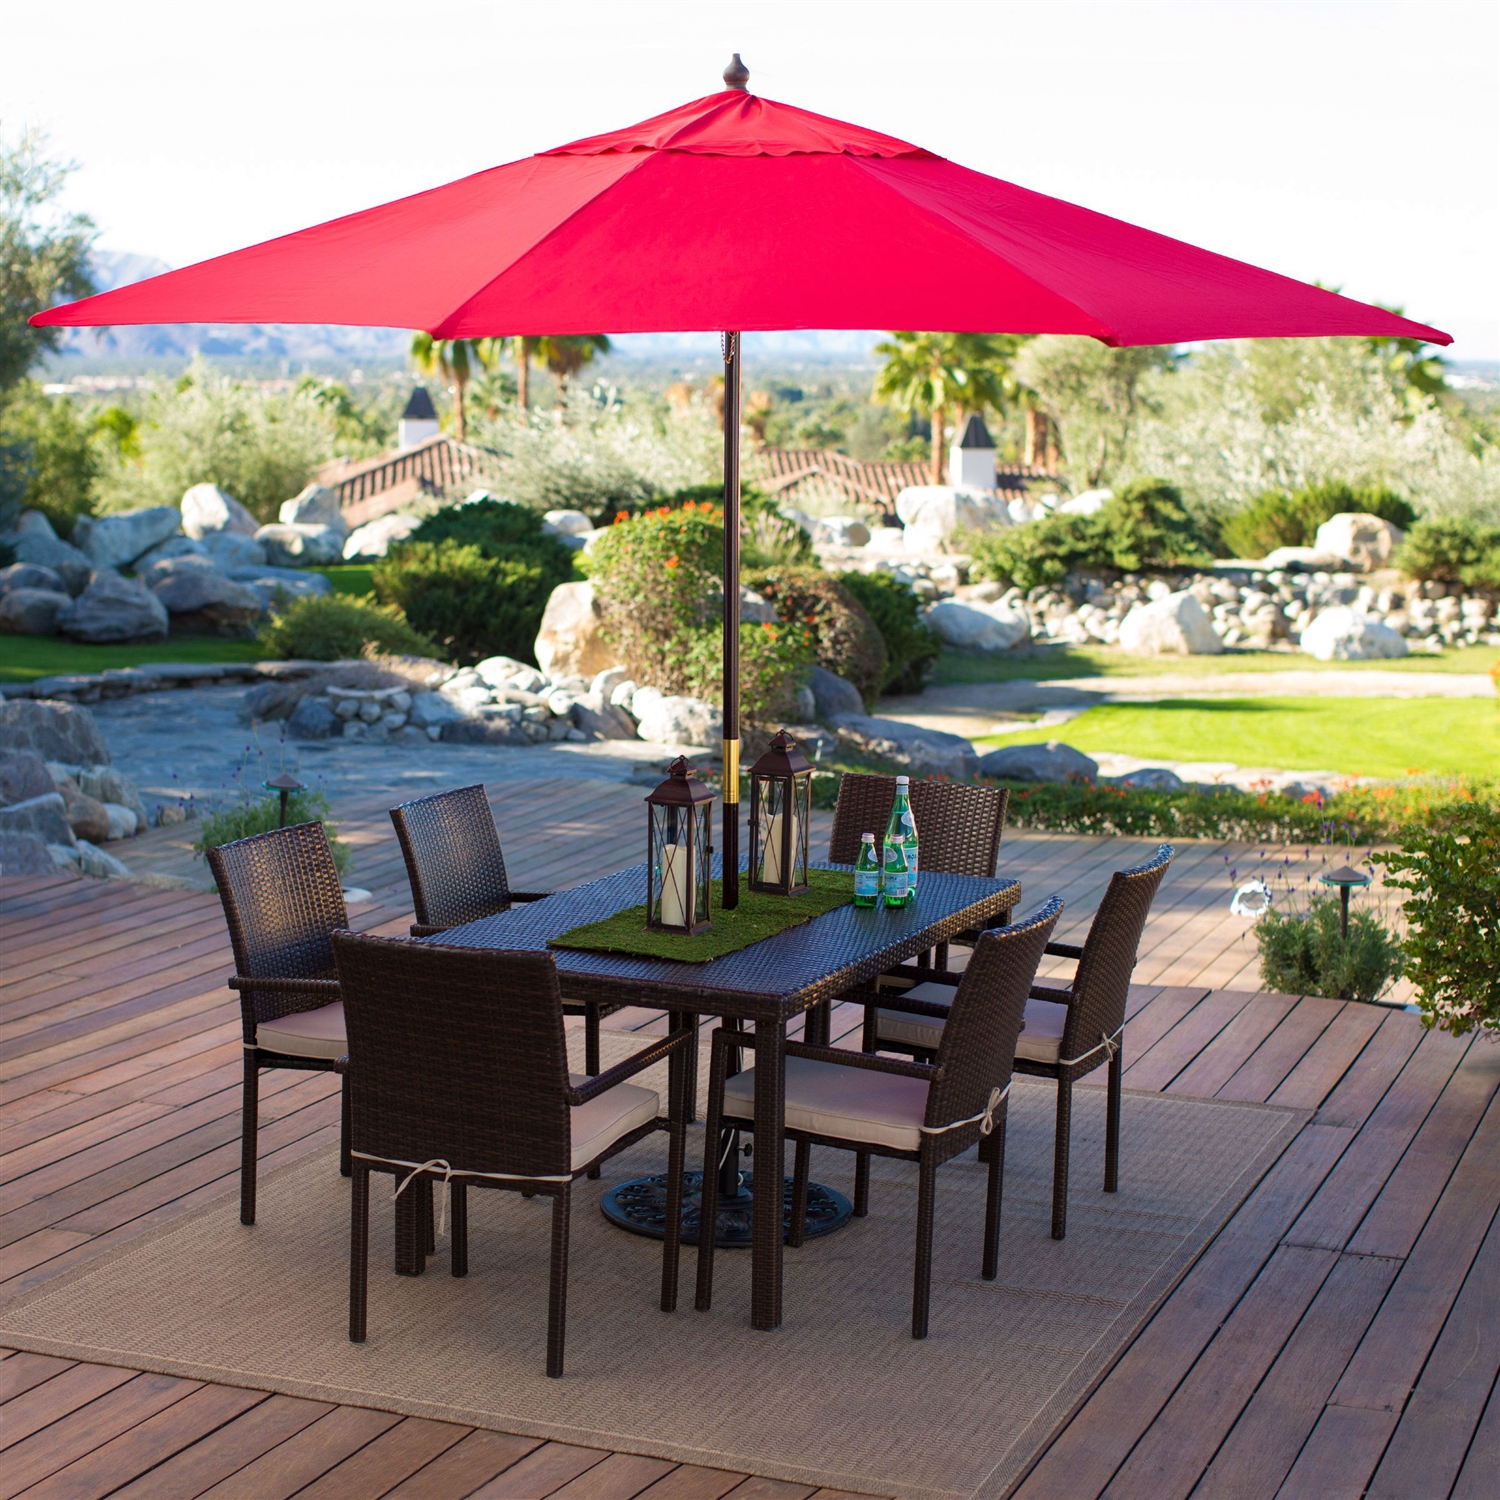 Outdoor Patio 11 Ft Market Umbrella With Red Shade Canopy